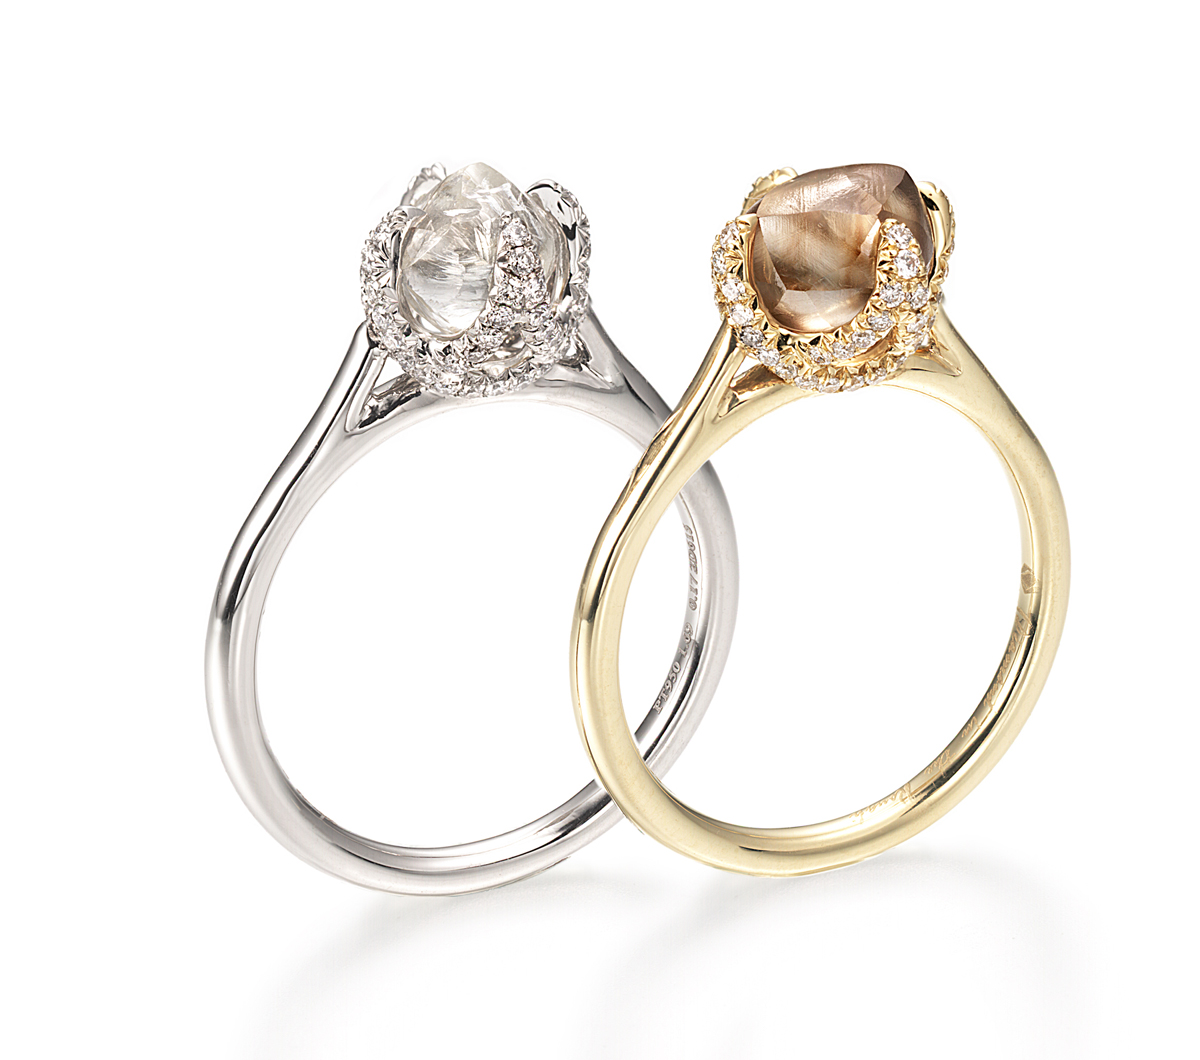 cube diamond vanier ring on and rings elsa koppmann en yellow josef gold silver rough